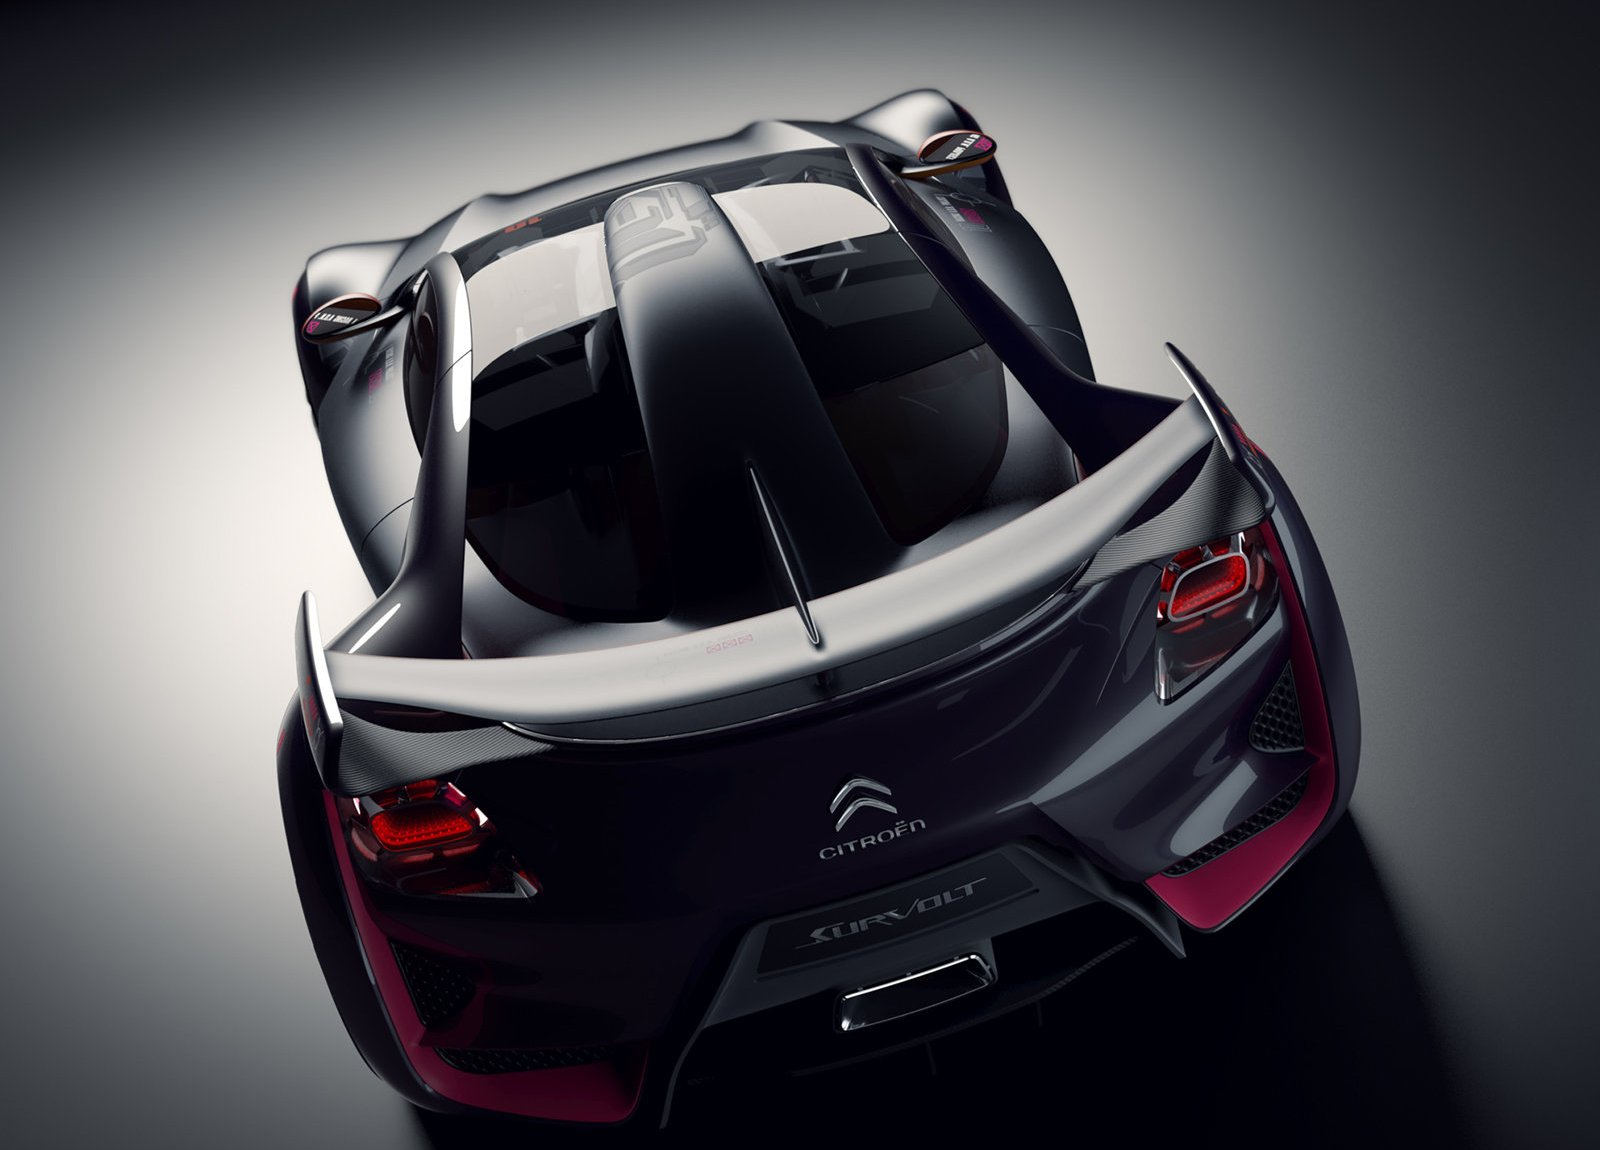 rear_above_shot_of_citroen_survolt_concept_car.1600x1150.c8f9861c